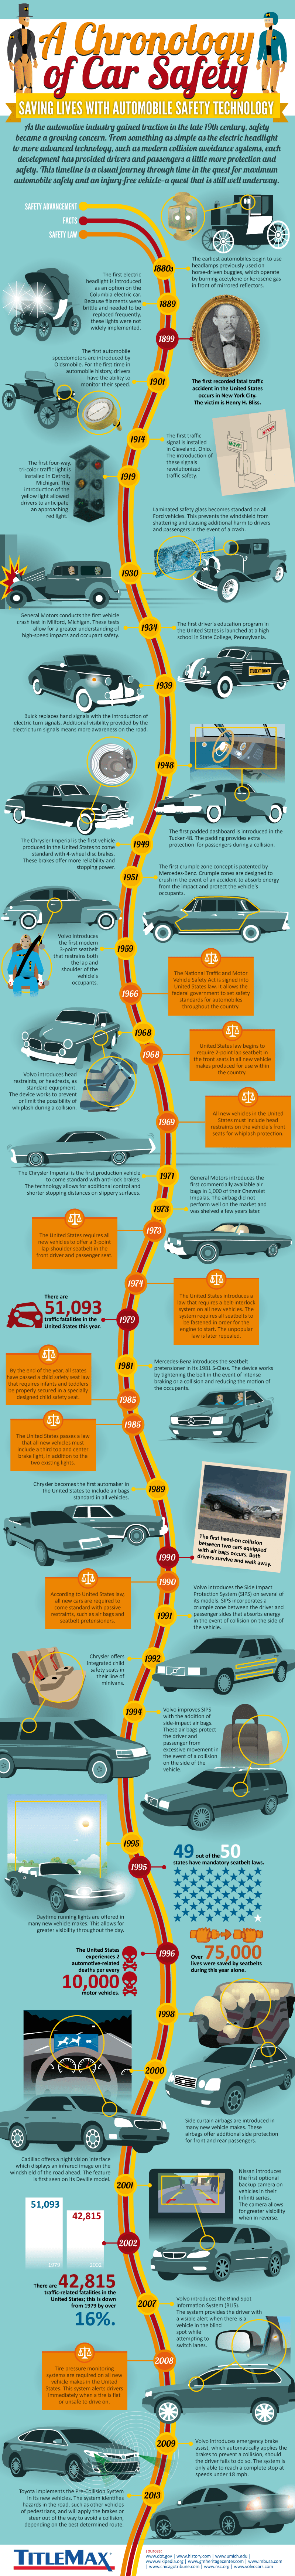 A Chronology of Car Safety